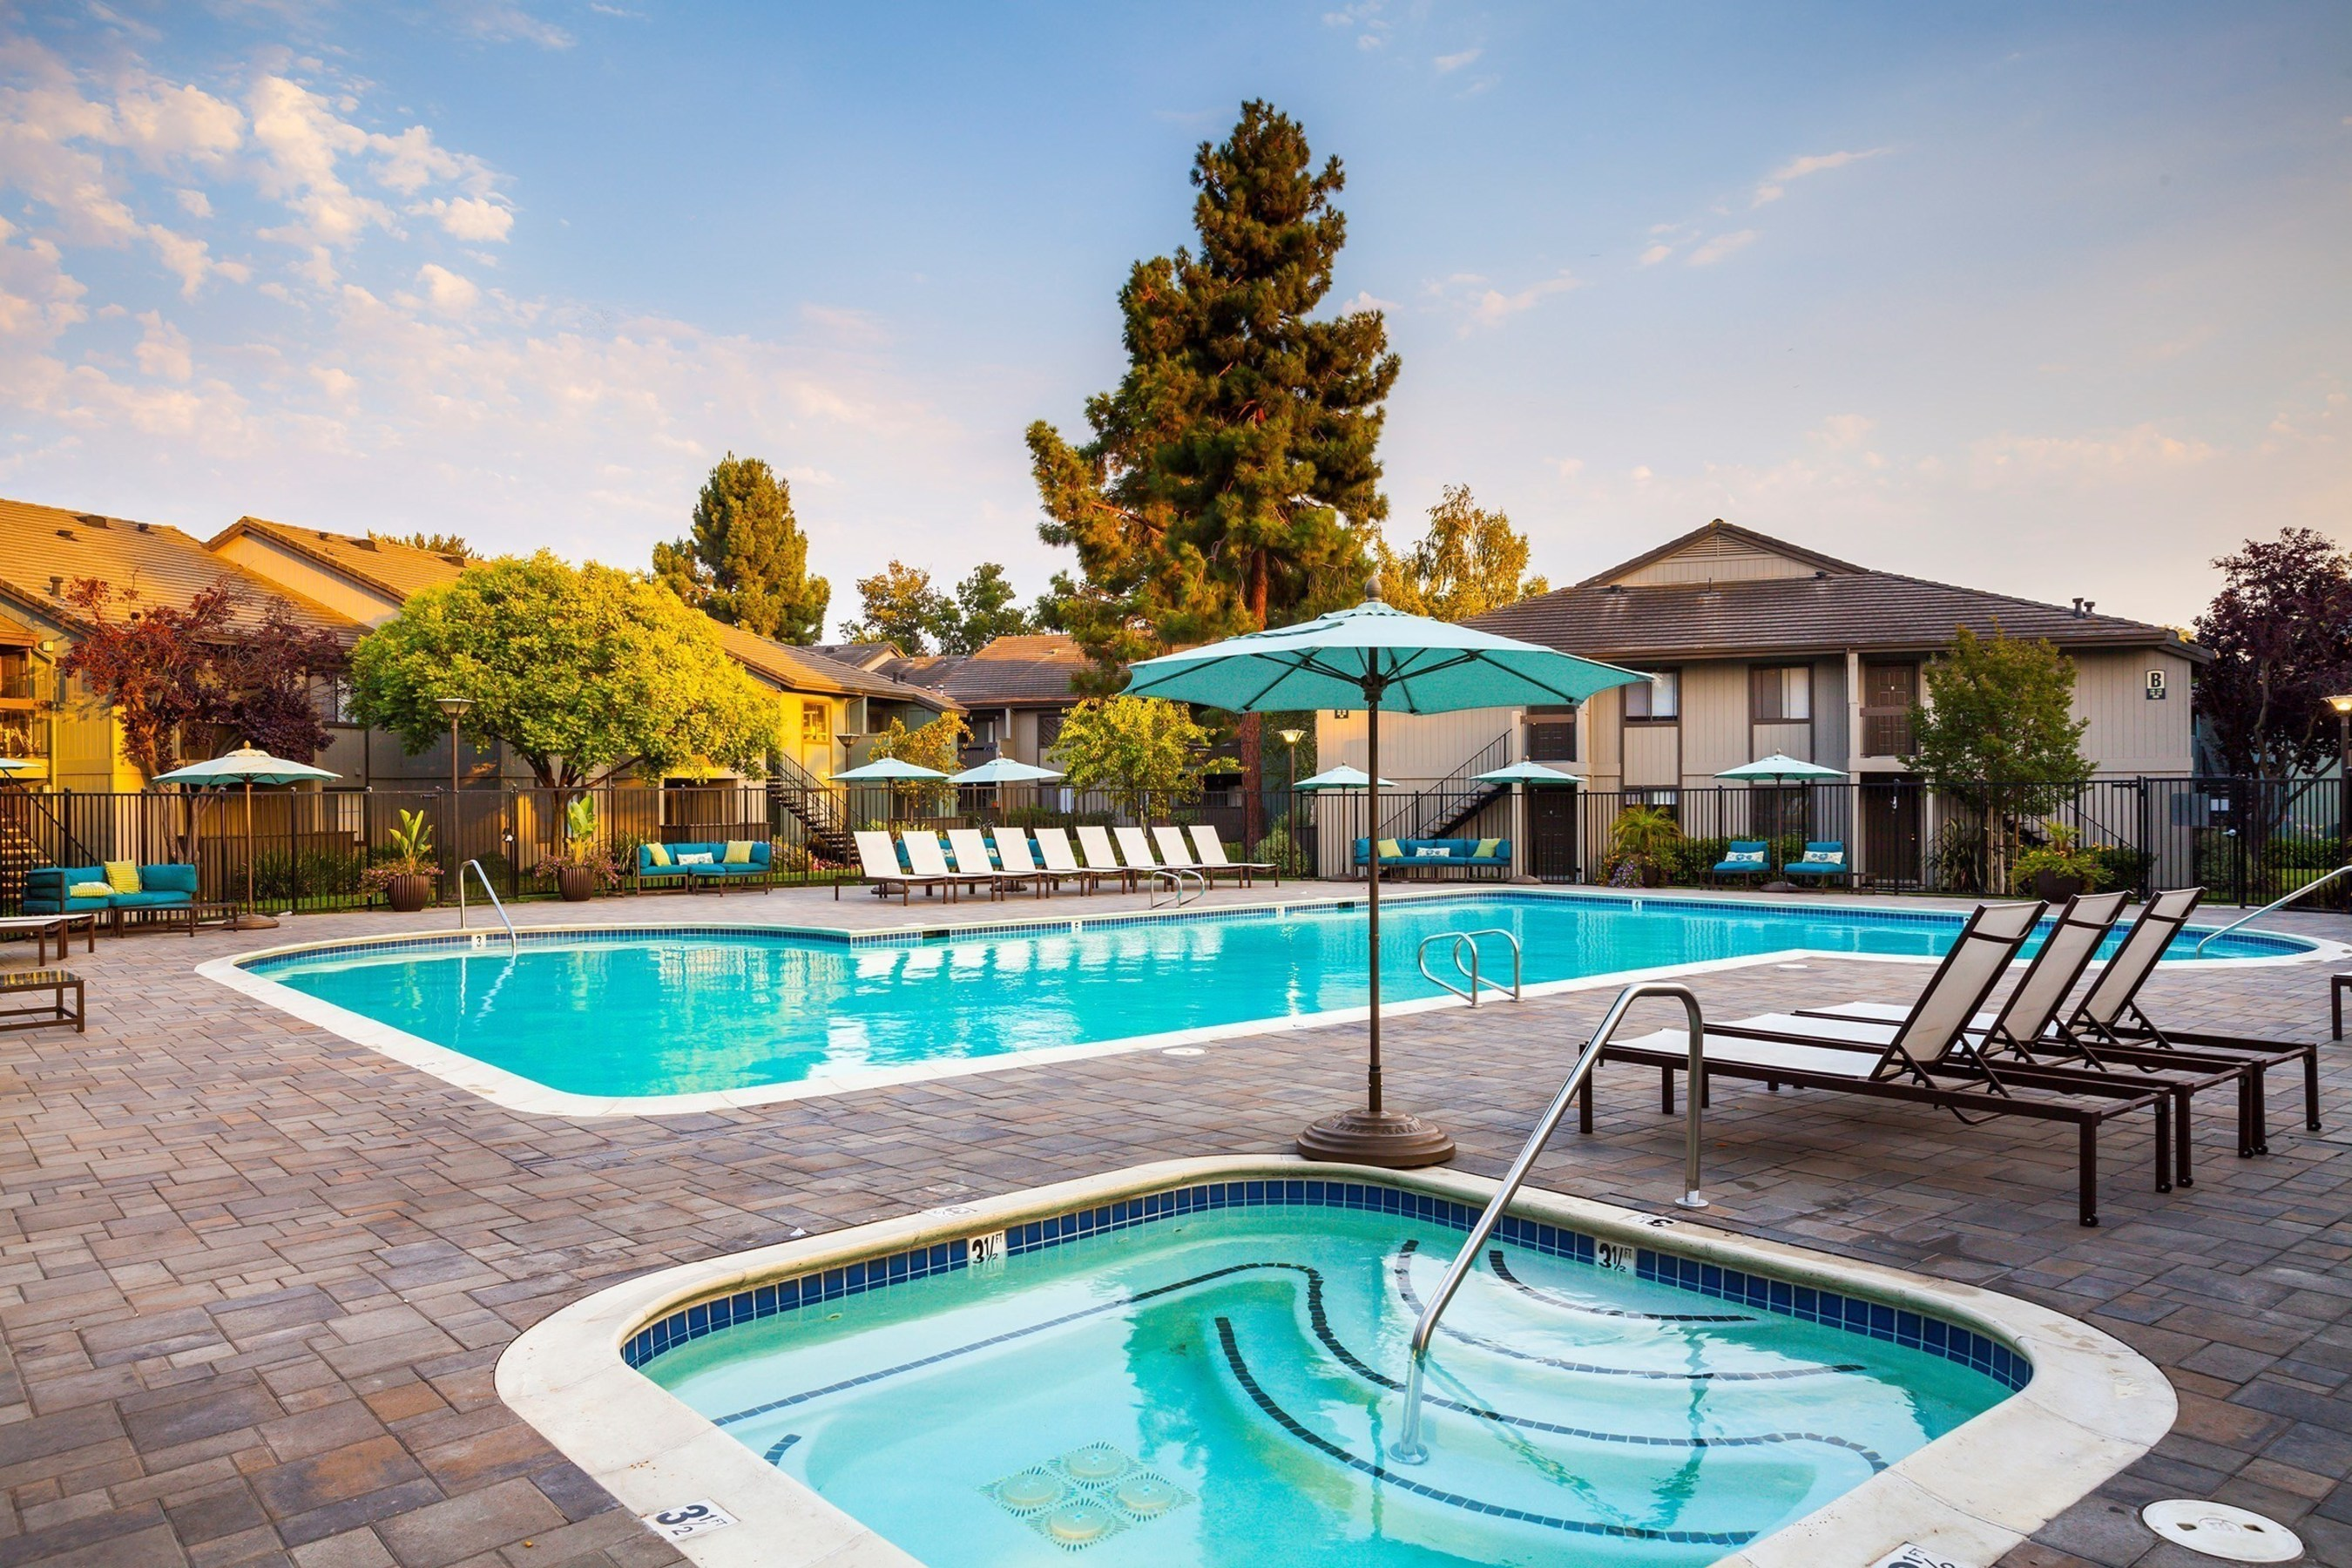 Phoenix Realty Group and Intercontinental Real Estate Corporation Acquire 544-unit Multifamily Property in East Bay Area